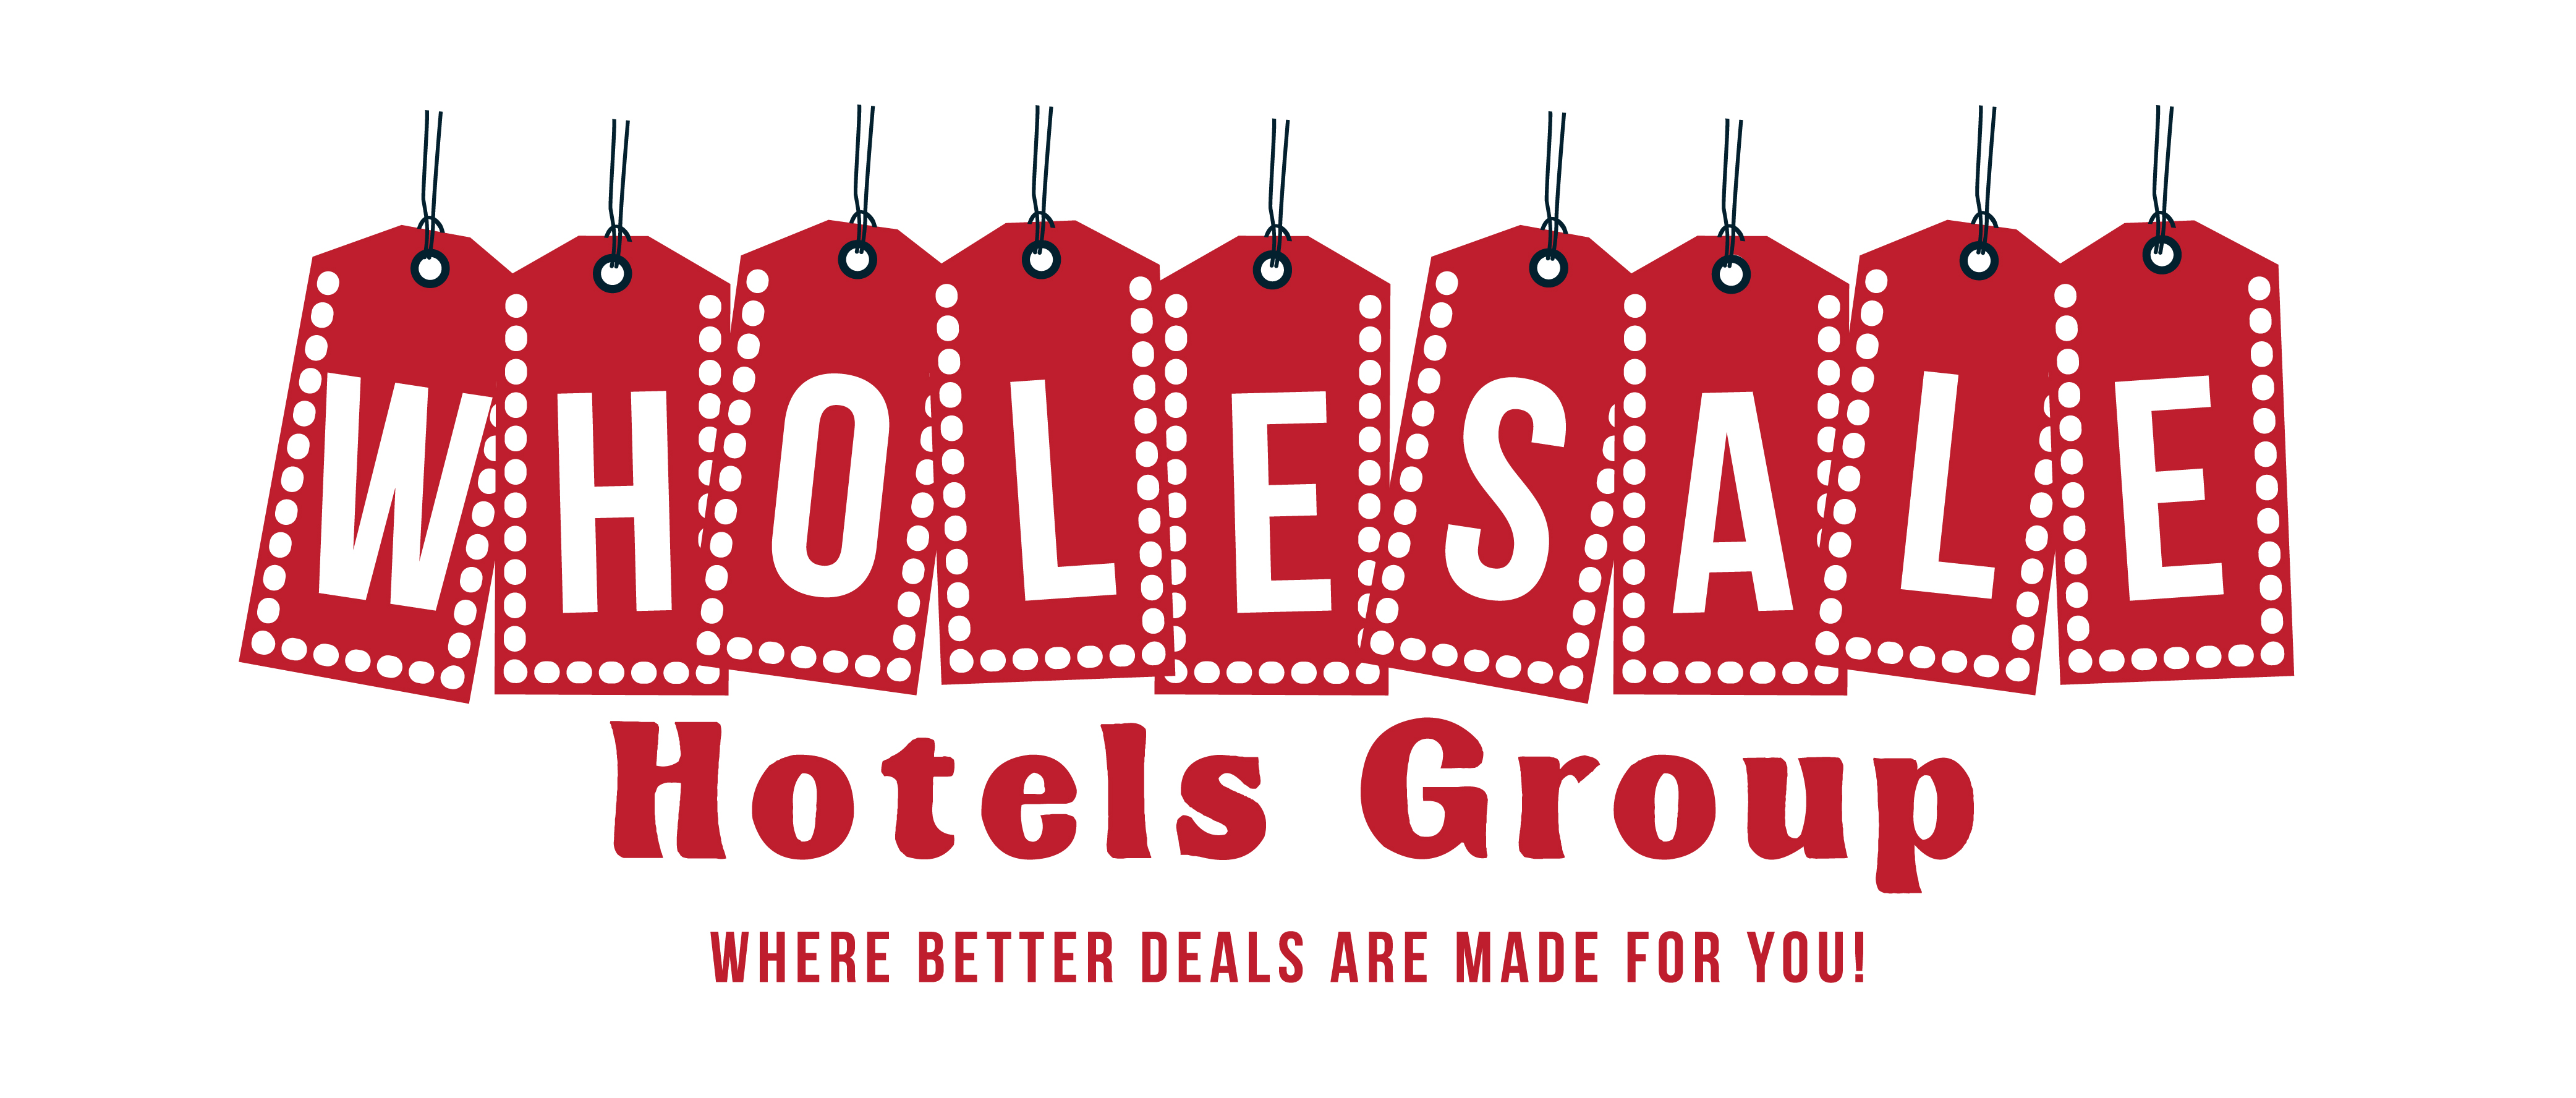 Wholesale Hotels Group - Wholesale Hotel Prices for your travel agency!